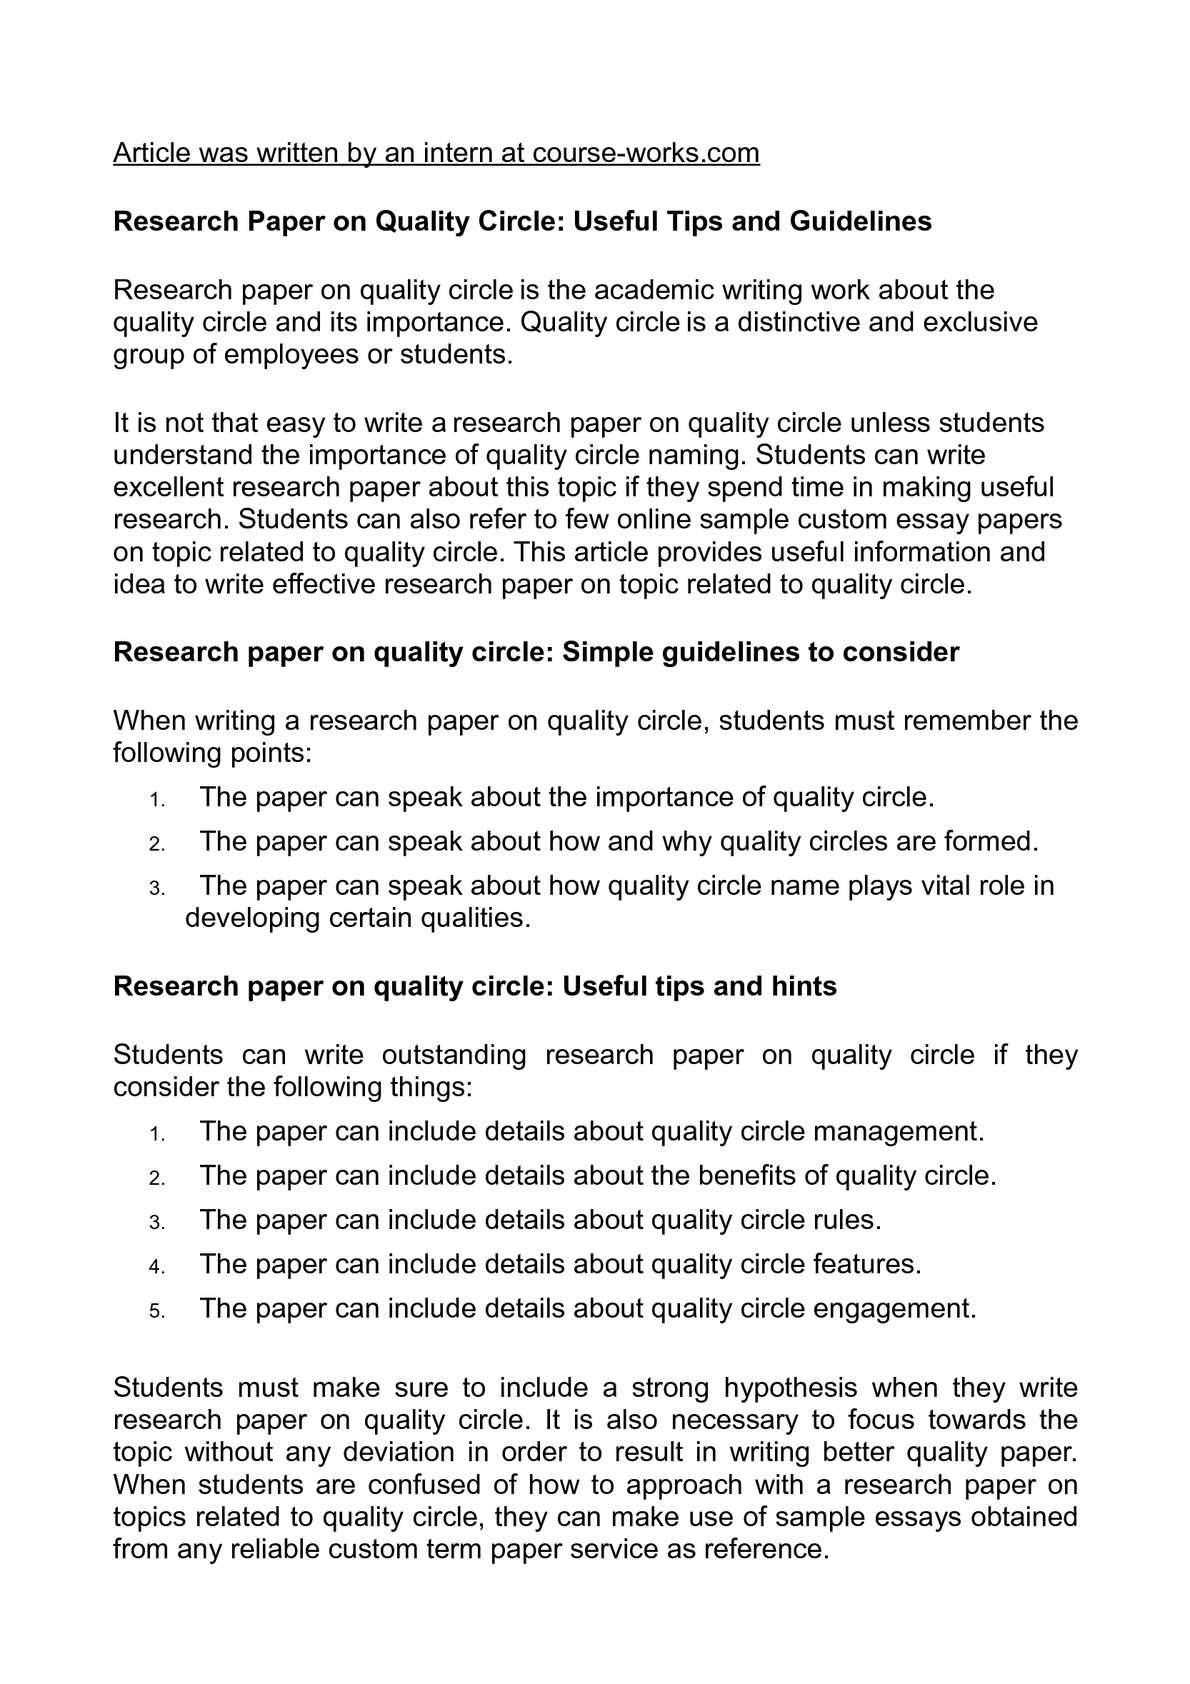 Calamo  Research Paper On Quality Circle Useful Tips And Guidelines Research Paper On Quality Circle Useful Tips And Guidelines Descriptive Essay Thesis also Argumentative Essay Examples High School  Sba Business Plan Writing Service